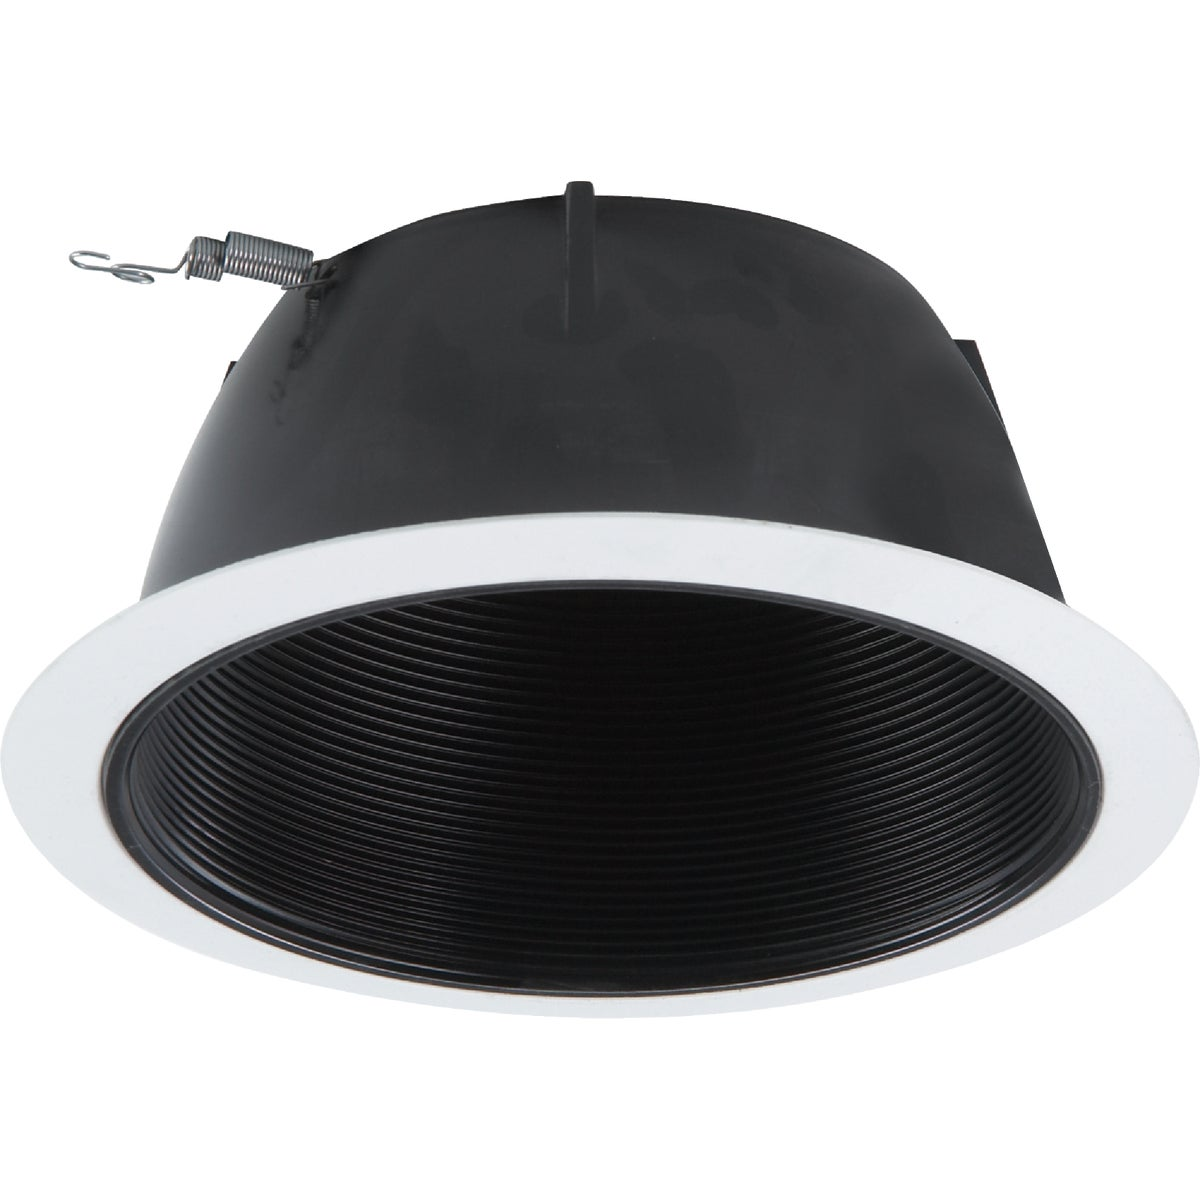 BLK/WHT RECESS FIXT TRIM - 310P by Cooper Lighting